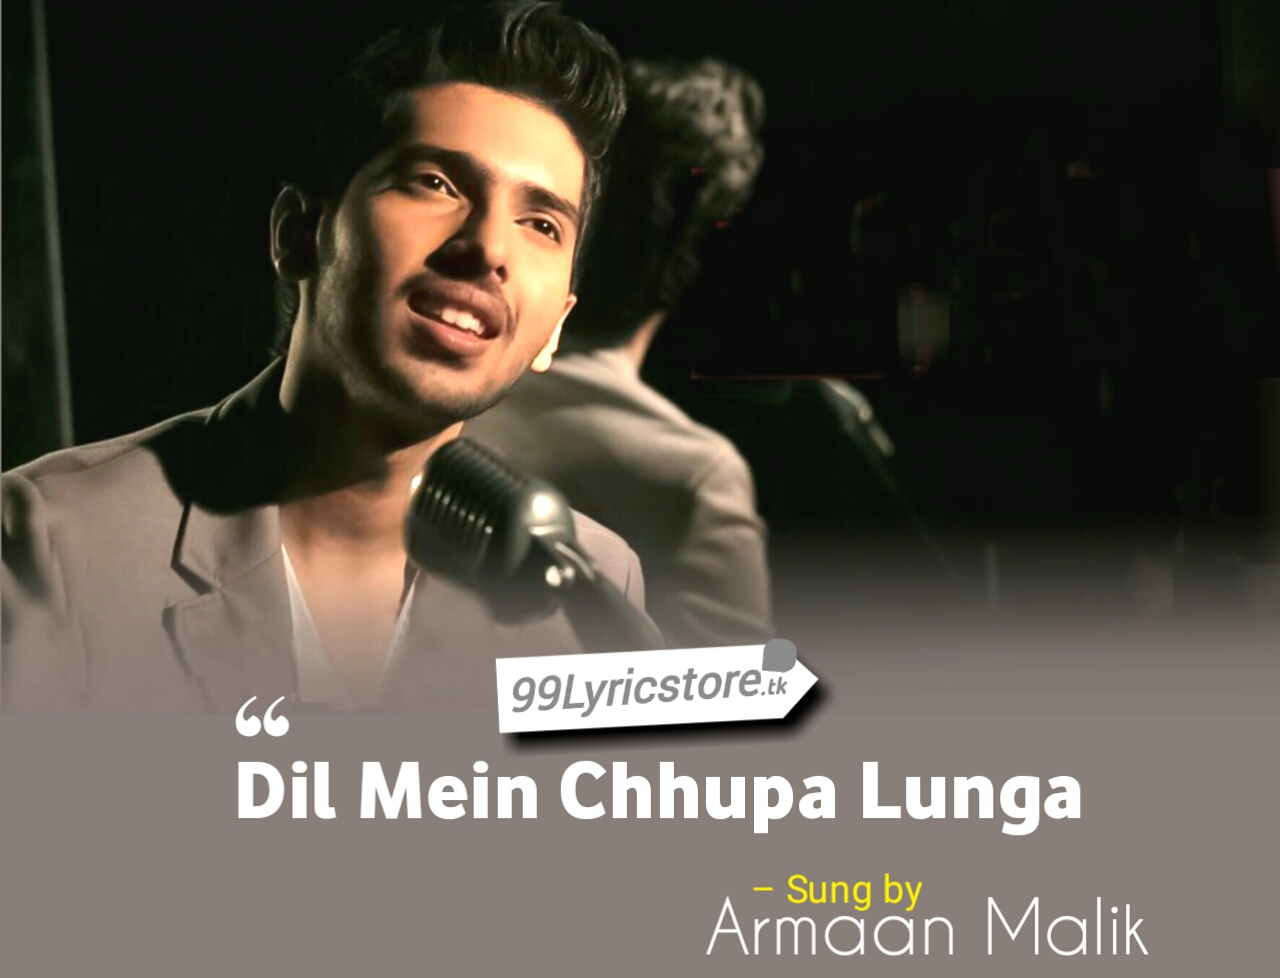 Tulsi Kumar Song Lyrics, Armaan Malik images, Armaan Malik Song Lyrics, Wajah Tum Ho Movie Songs Lyrics, Bollywood movie Song Lyrics, Hindi Song Lyrics, Meet Bros Song Lyrics